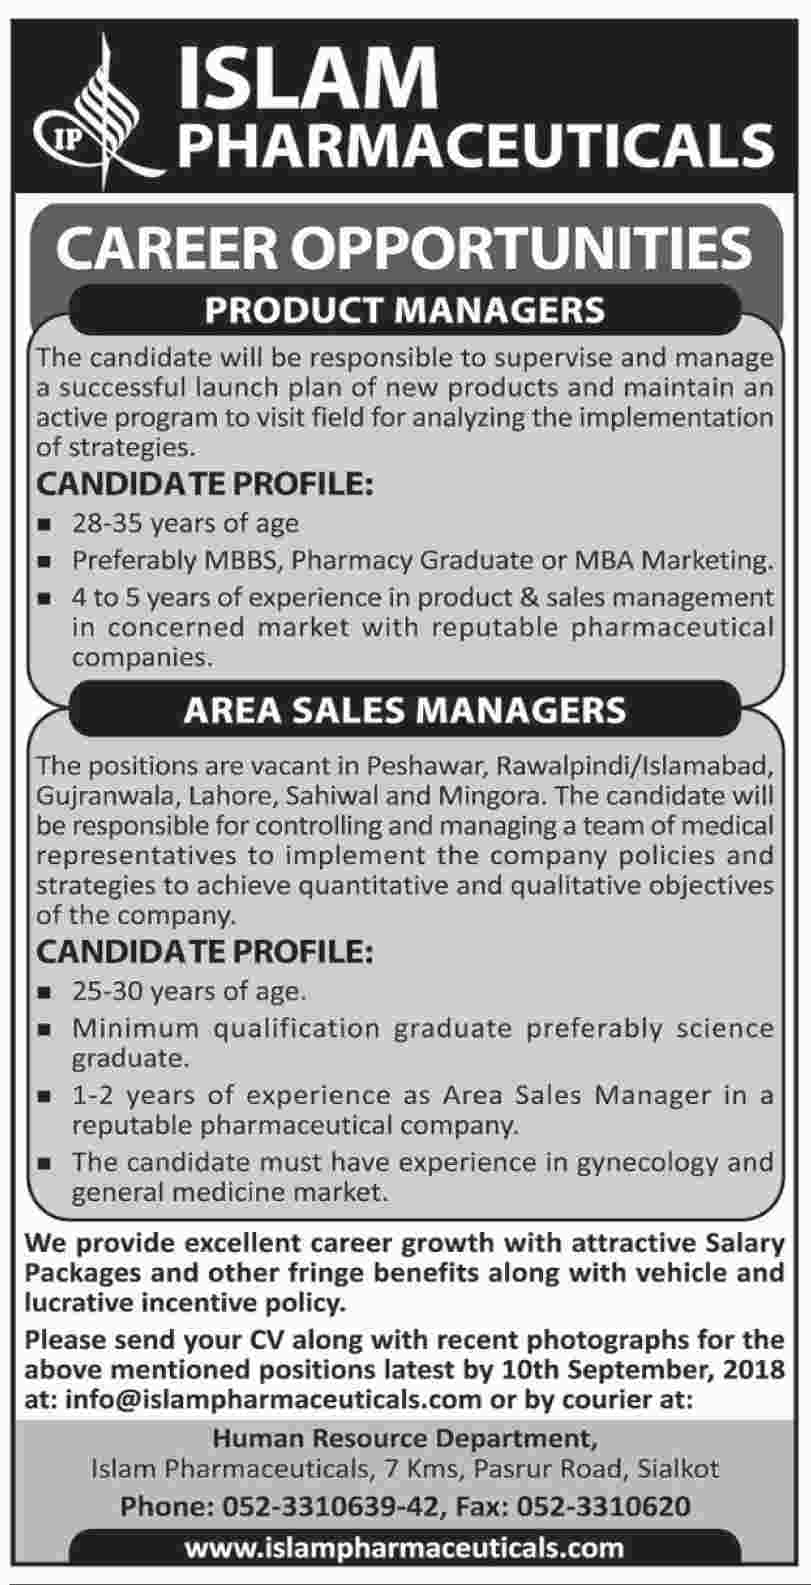 Product Manager, Areas Sales Manager jobs in Islam Pharmaceuticals